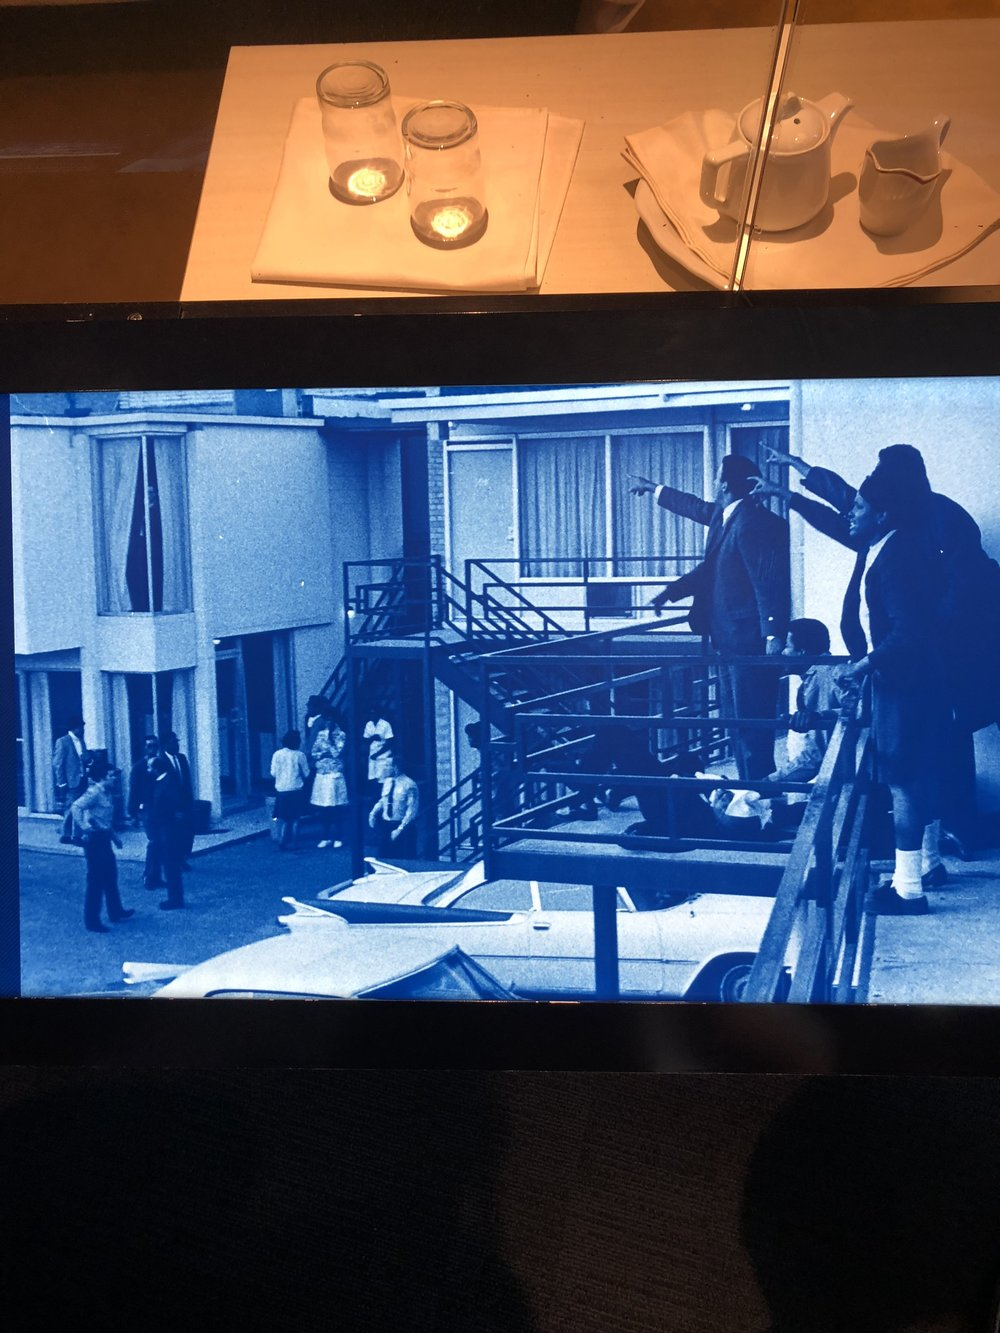 Image of Dr. King being shot